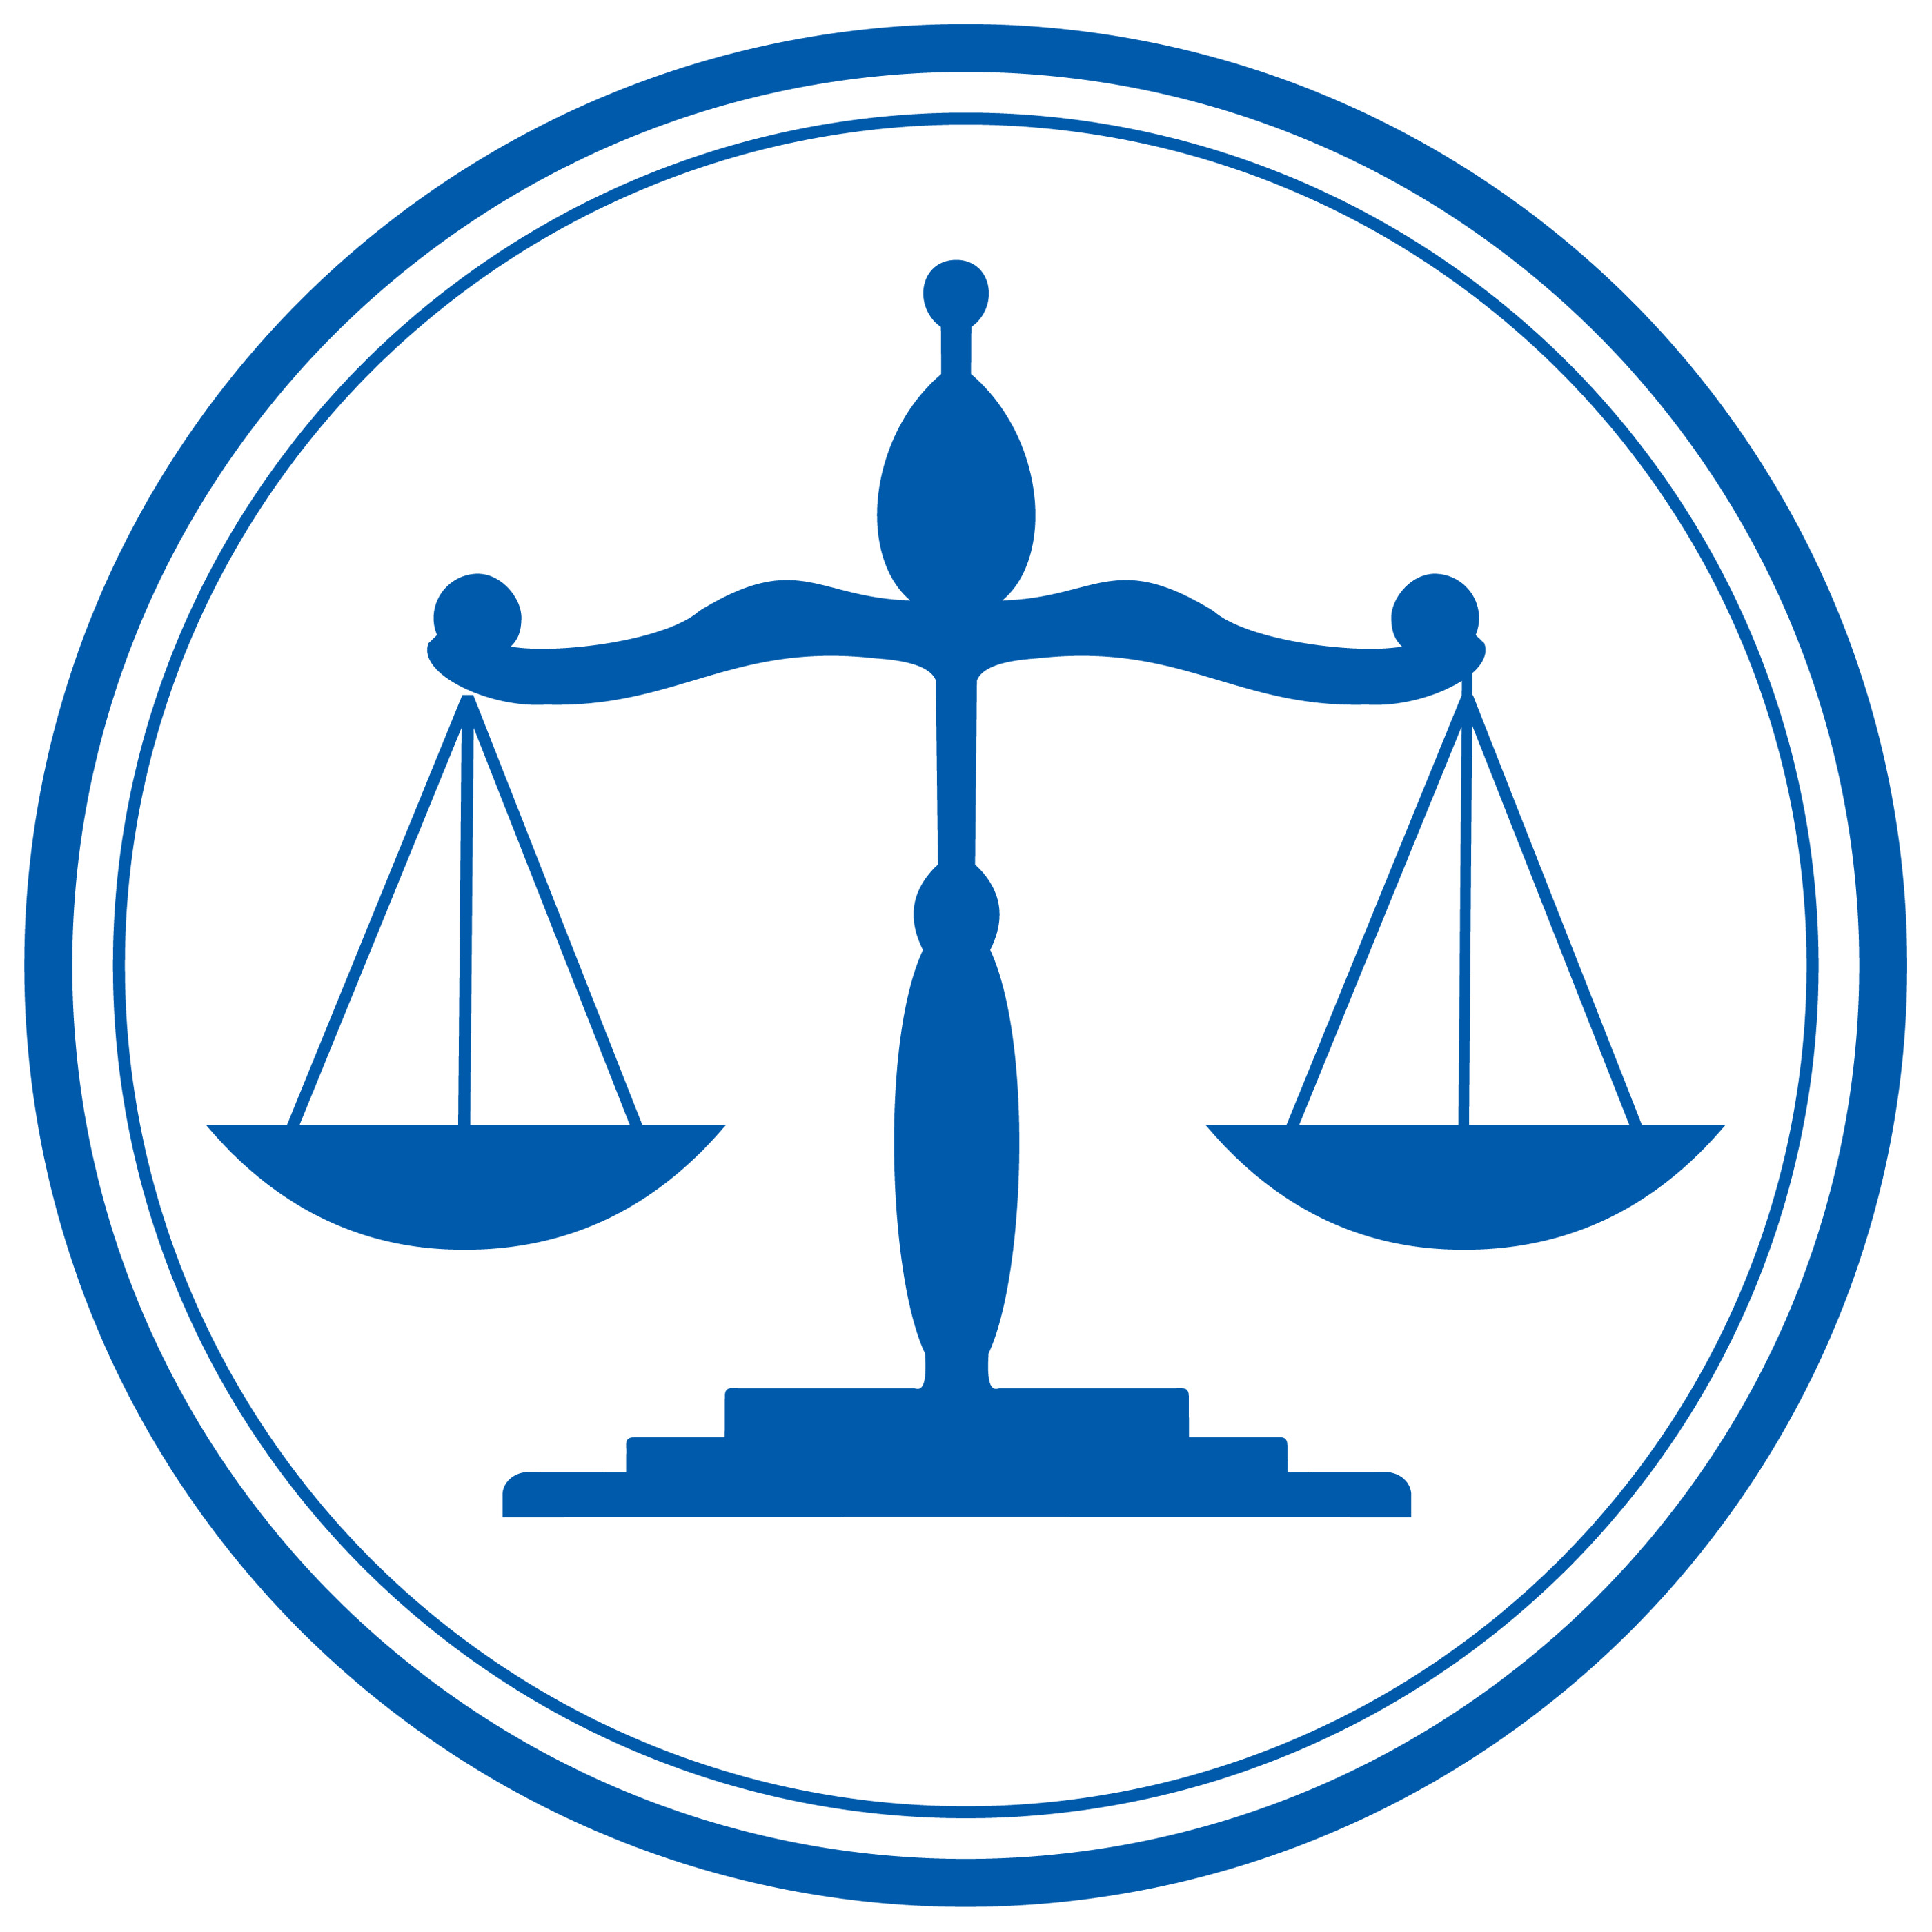 Free download clip art. Balance clipart justice